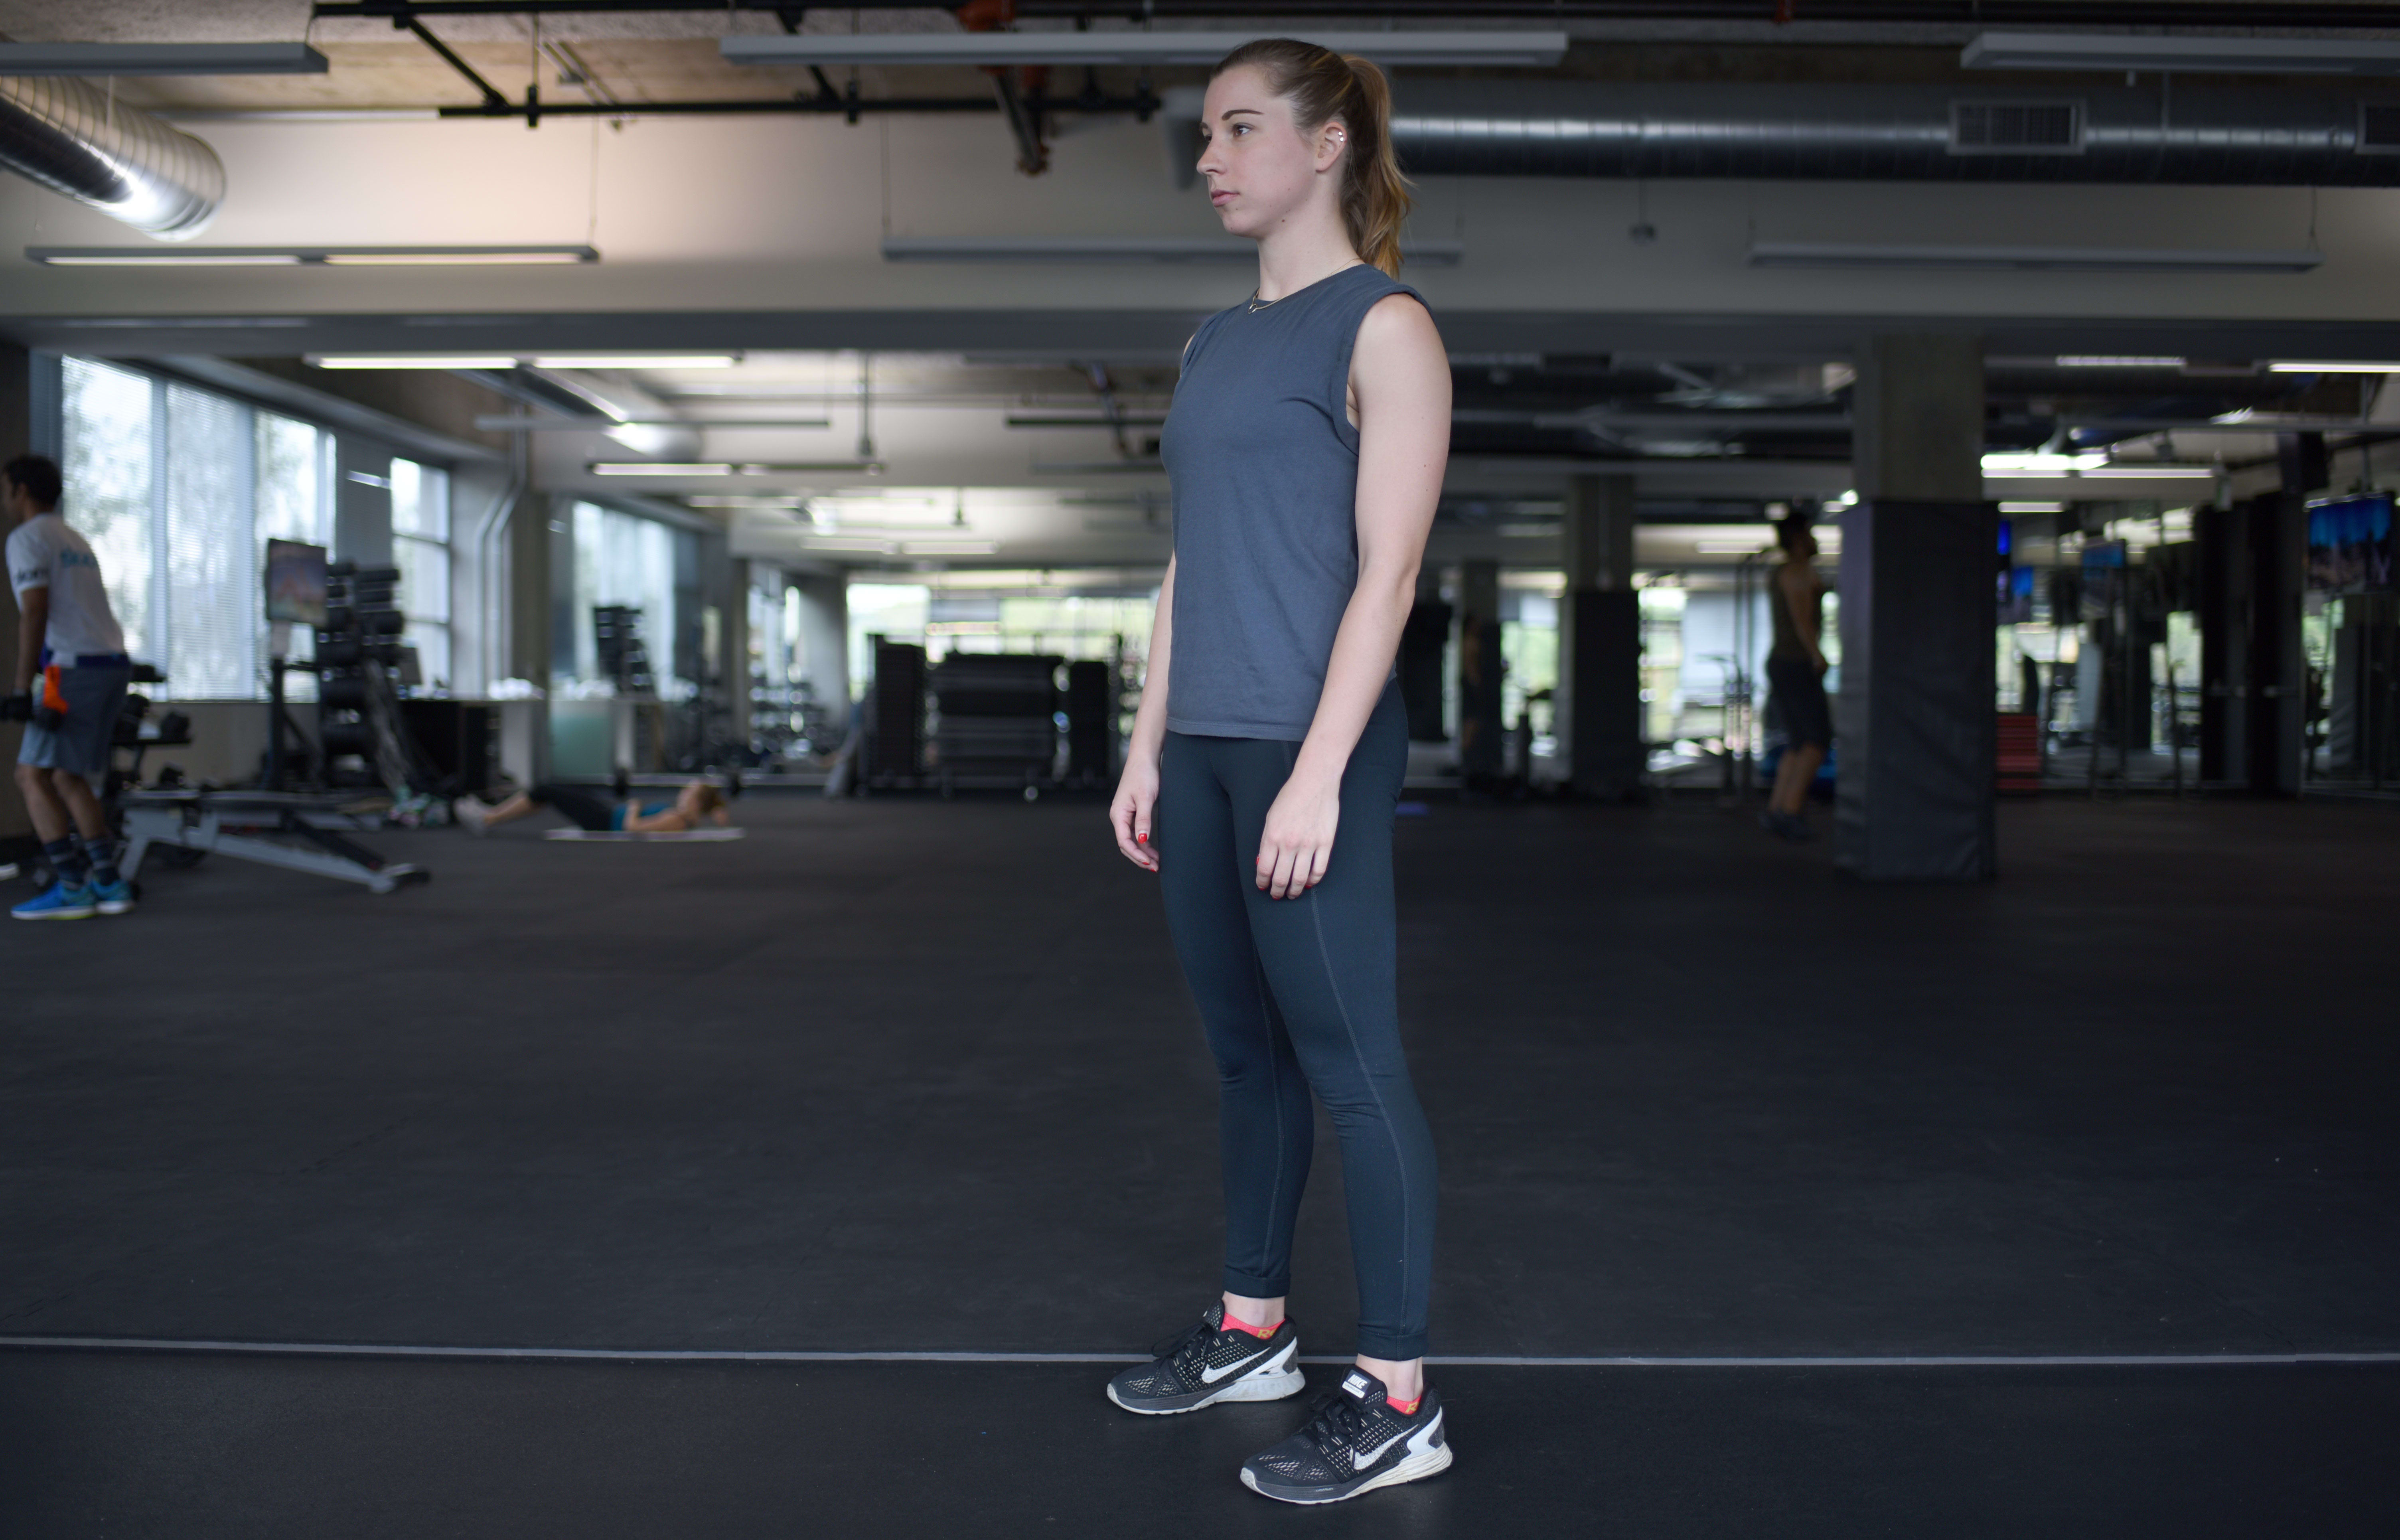 4 of the Best Butt Exercises to Lift Your Butt - Quadruped Hip Extension